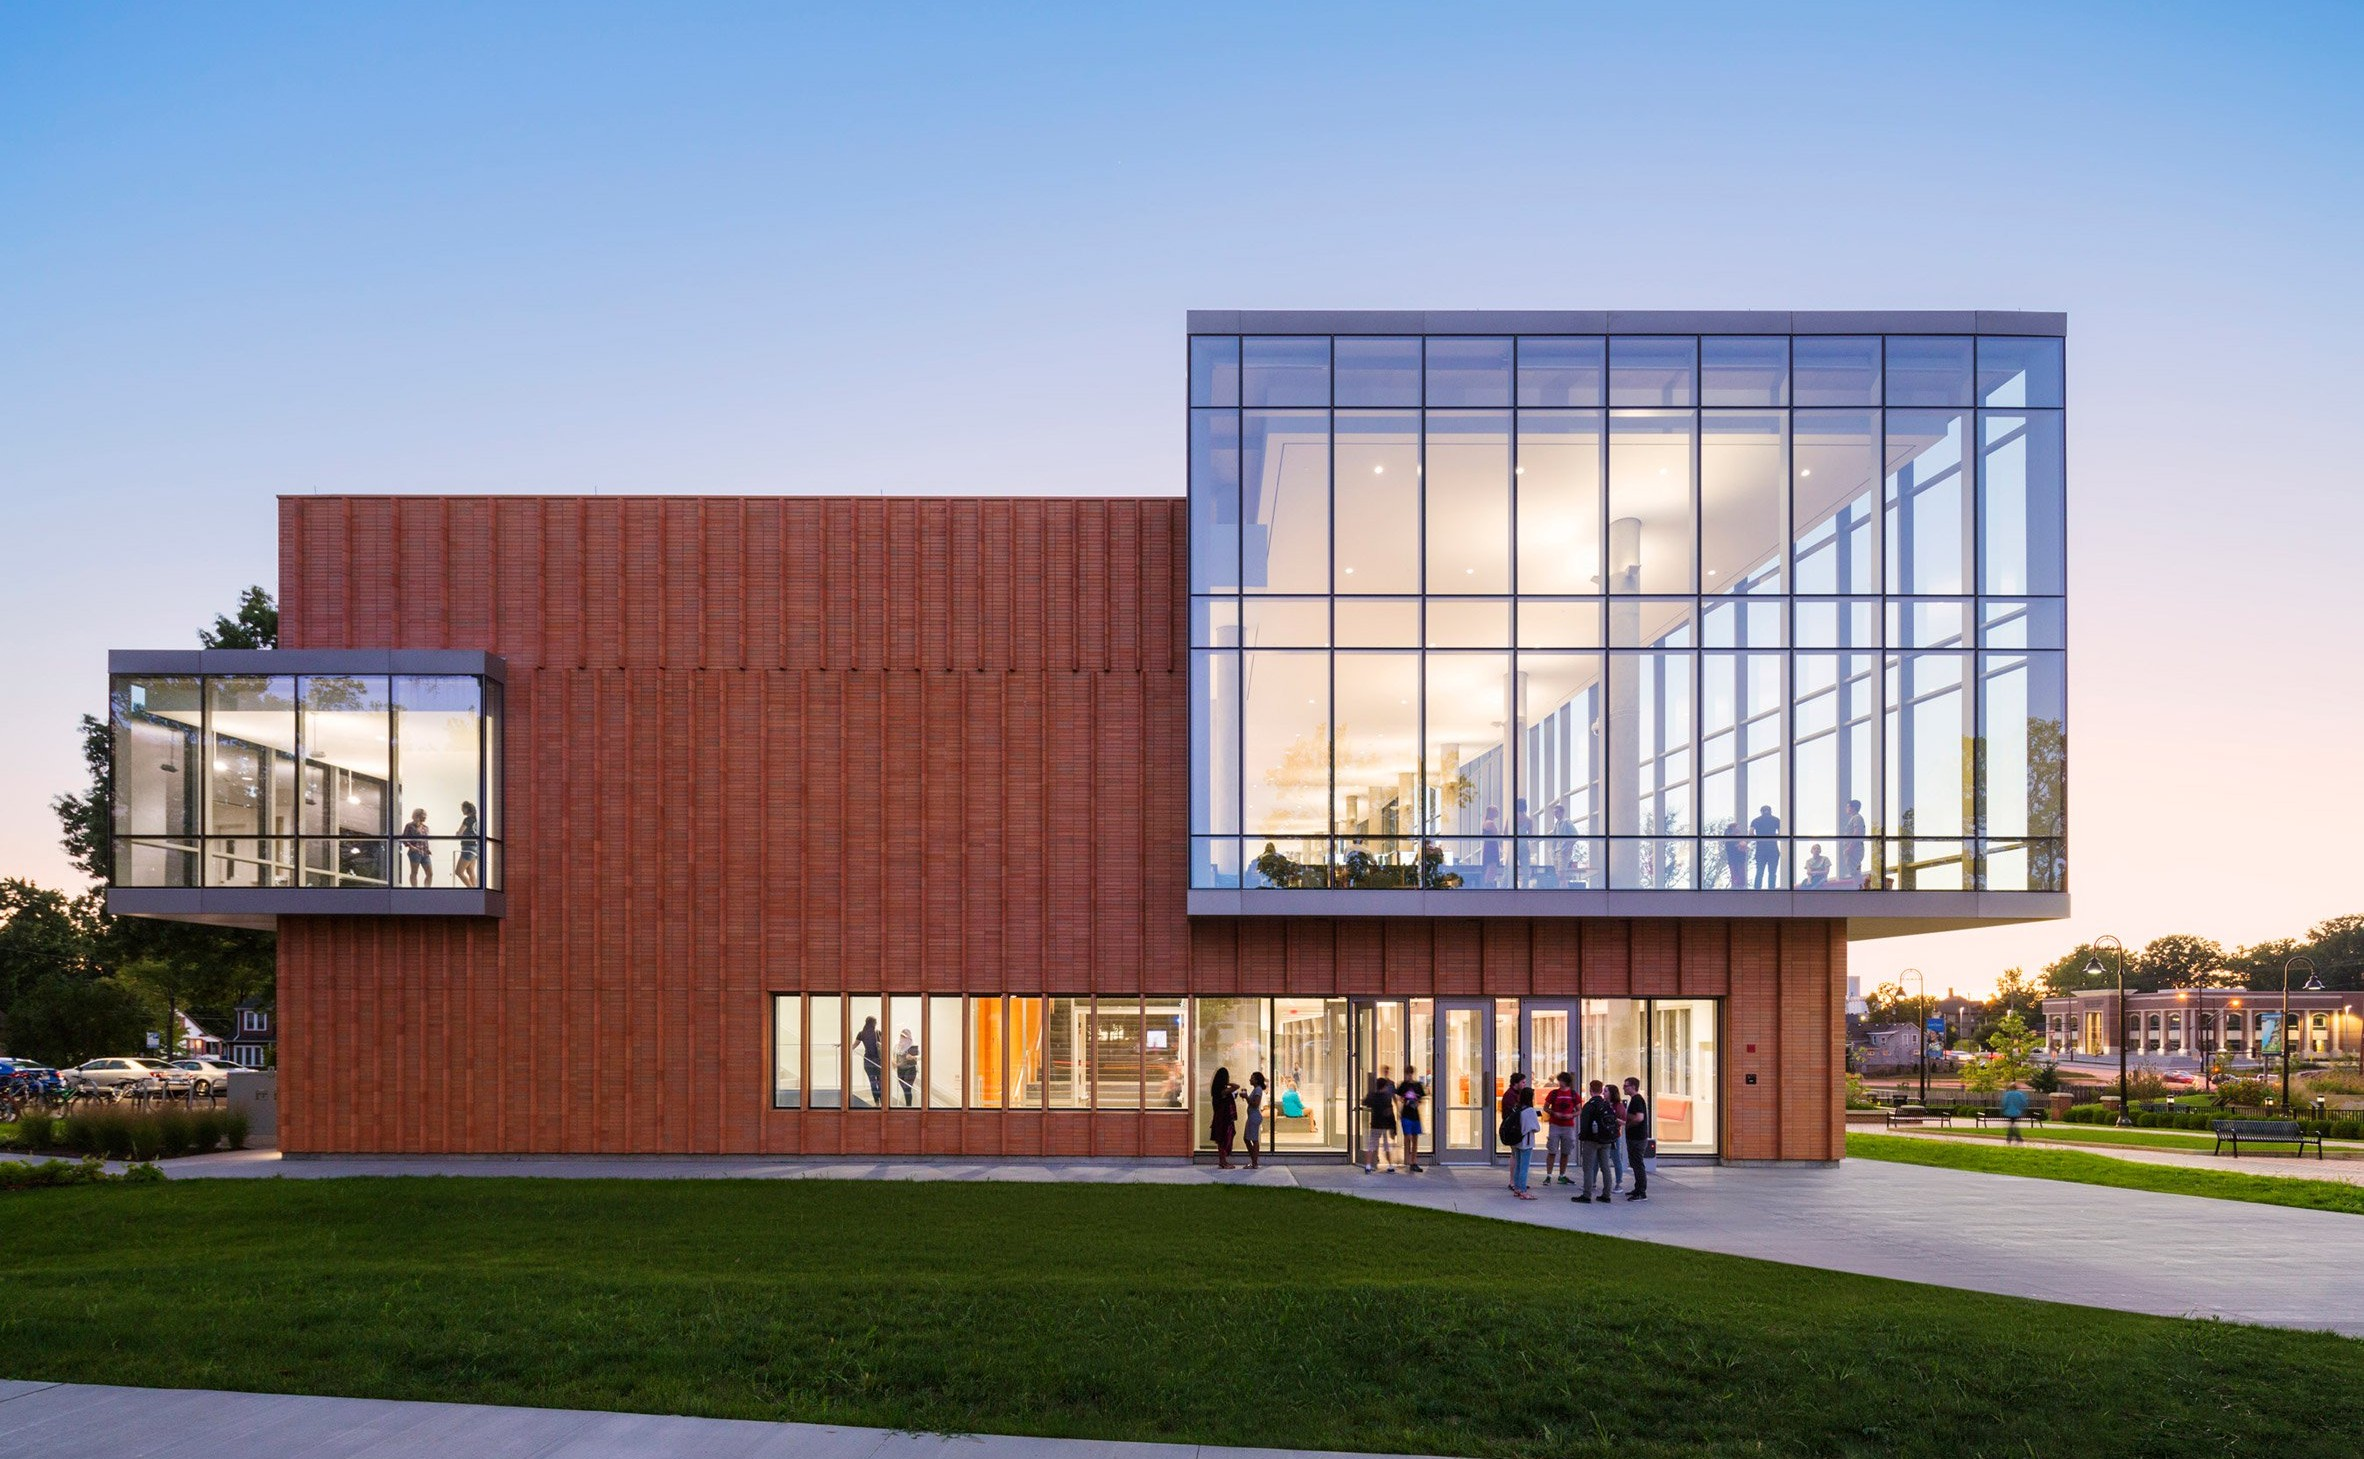 kent-state-arch-school-weiss-manfredi-architecture-education-ohio-usa_dezeen_2364_col_4